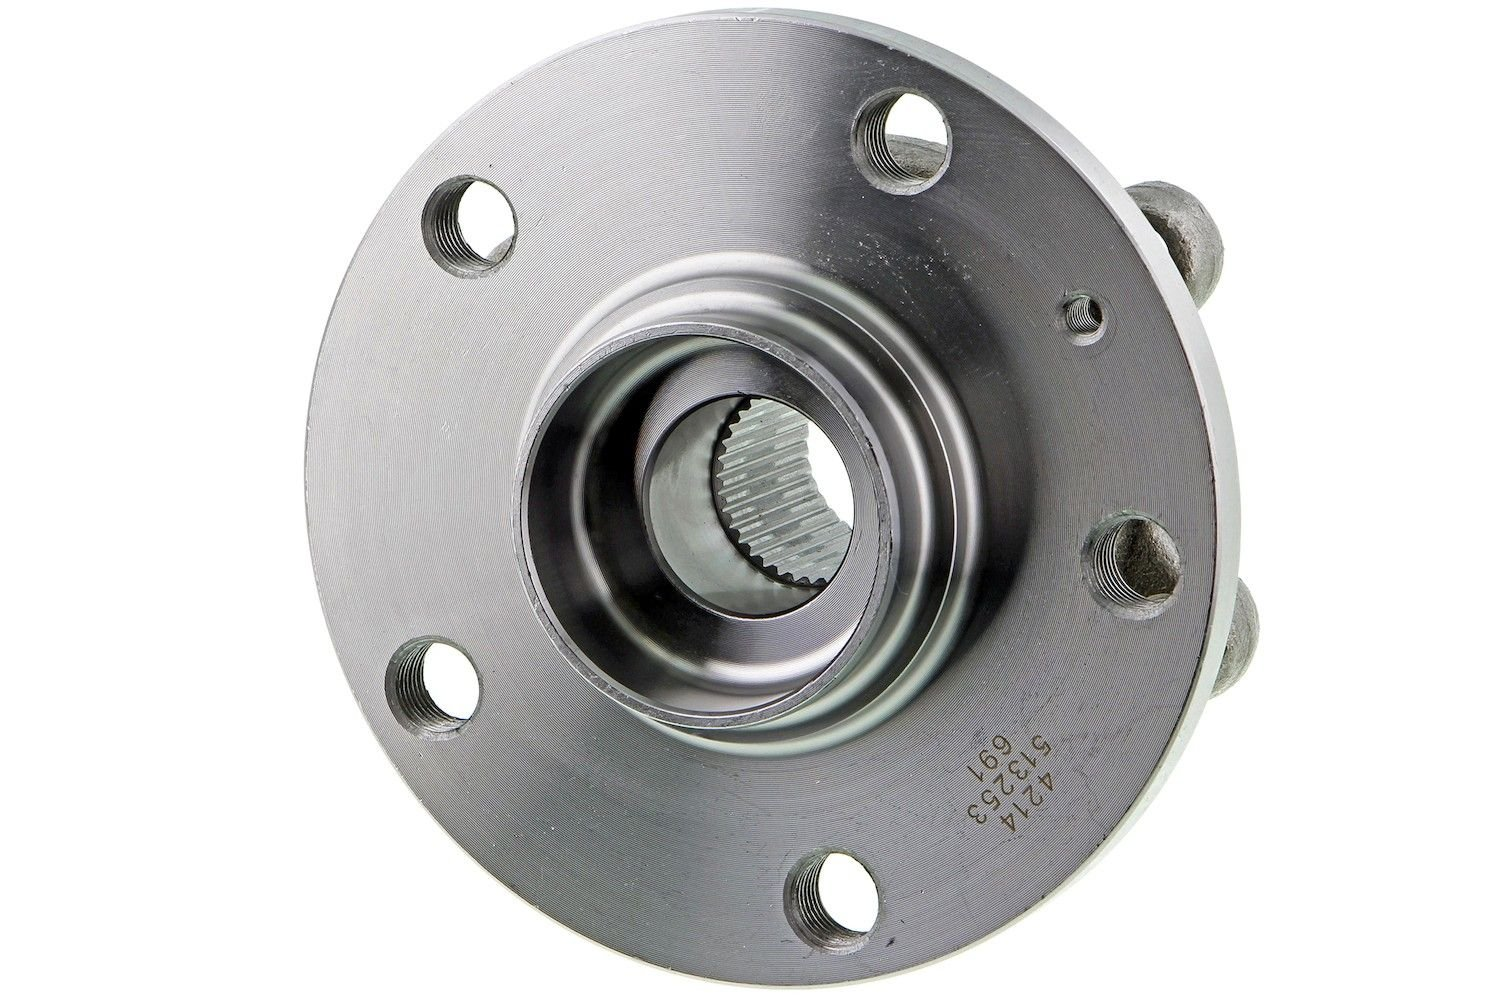 Volkswagen Golf Wheel Bearing and Hub Assembly Replacement (Beck